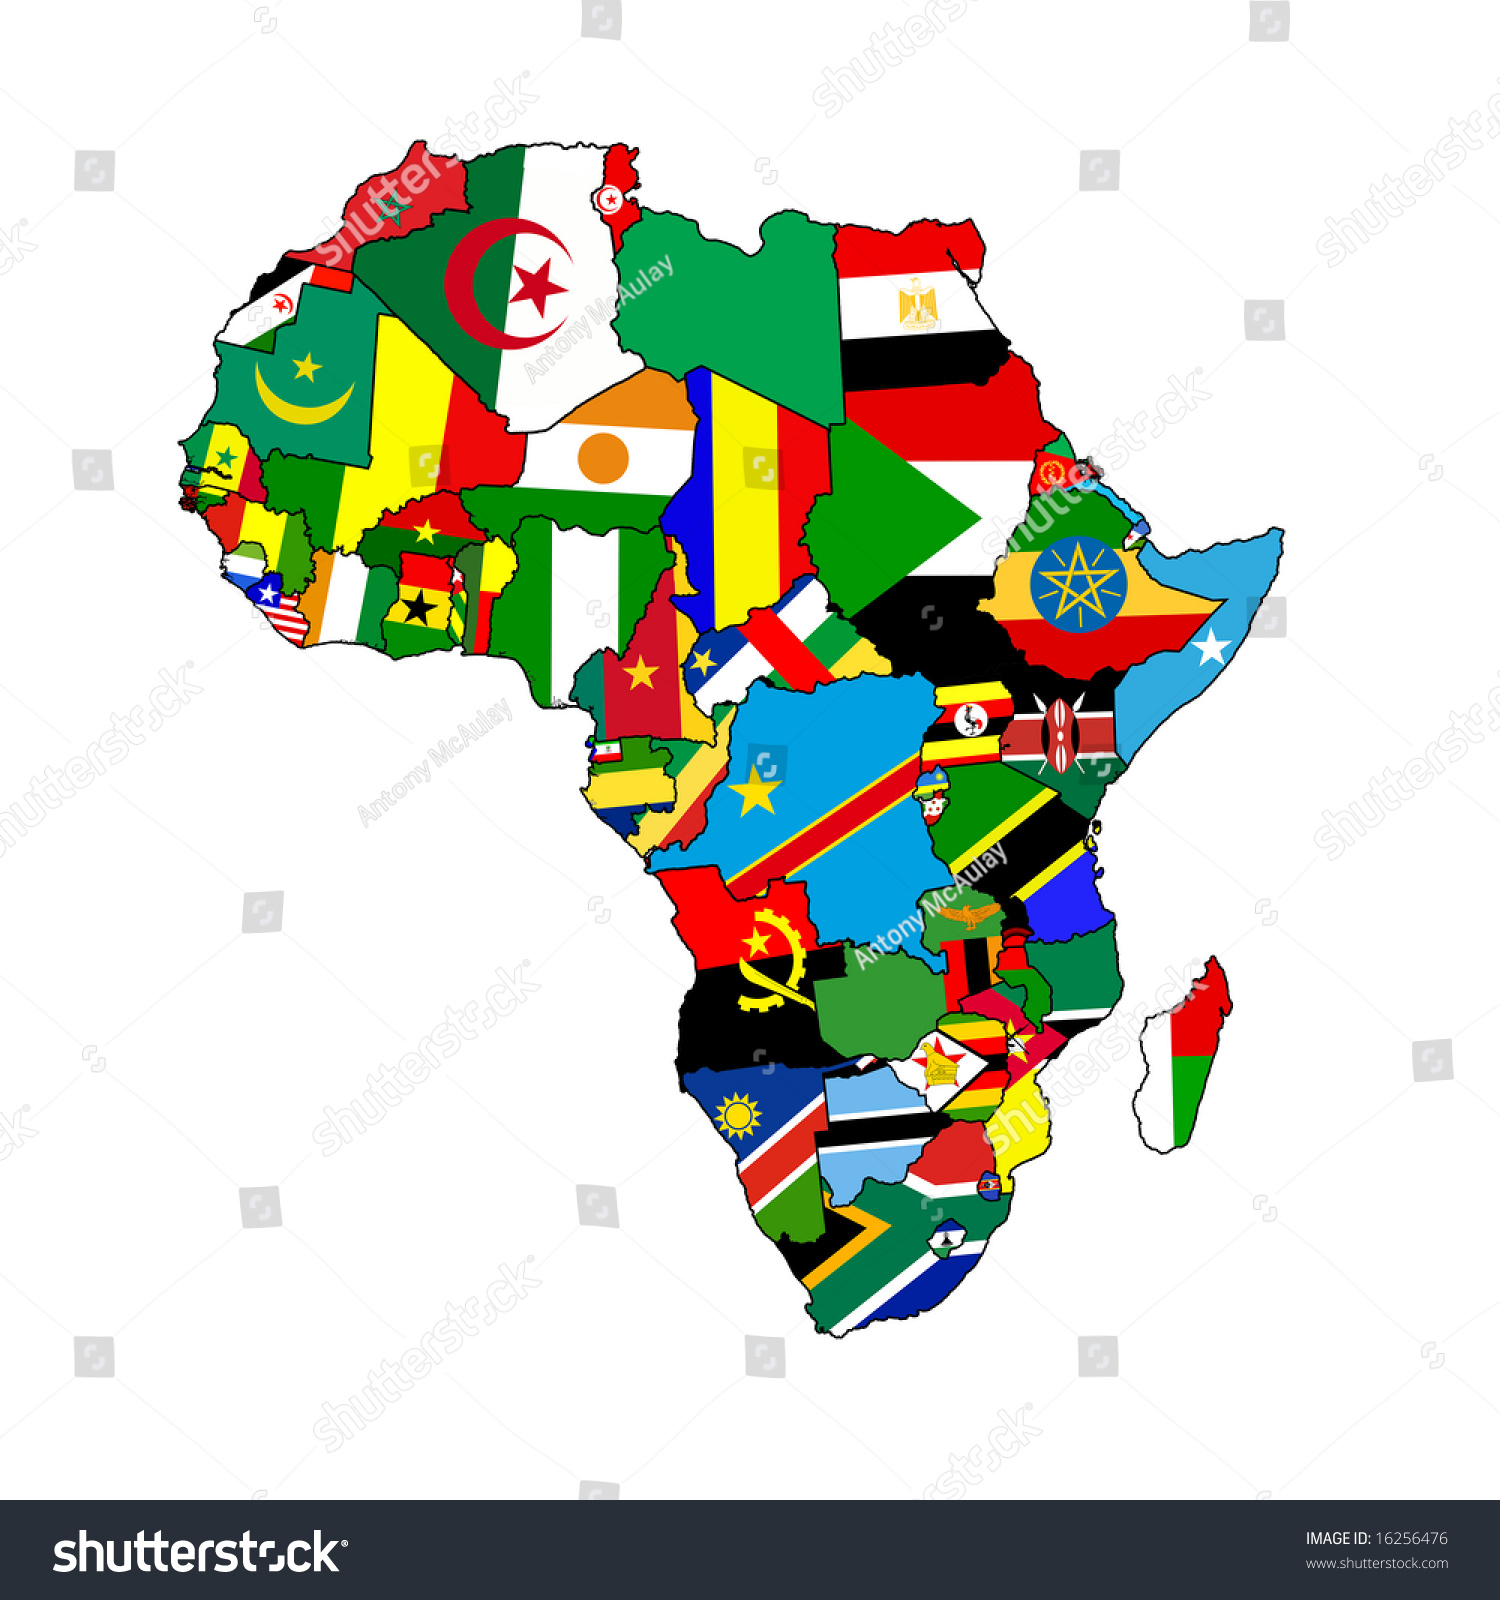 continent africa made country shaped flags stock illustration